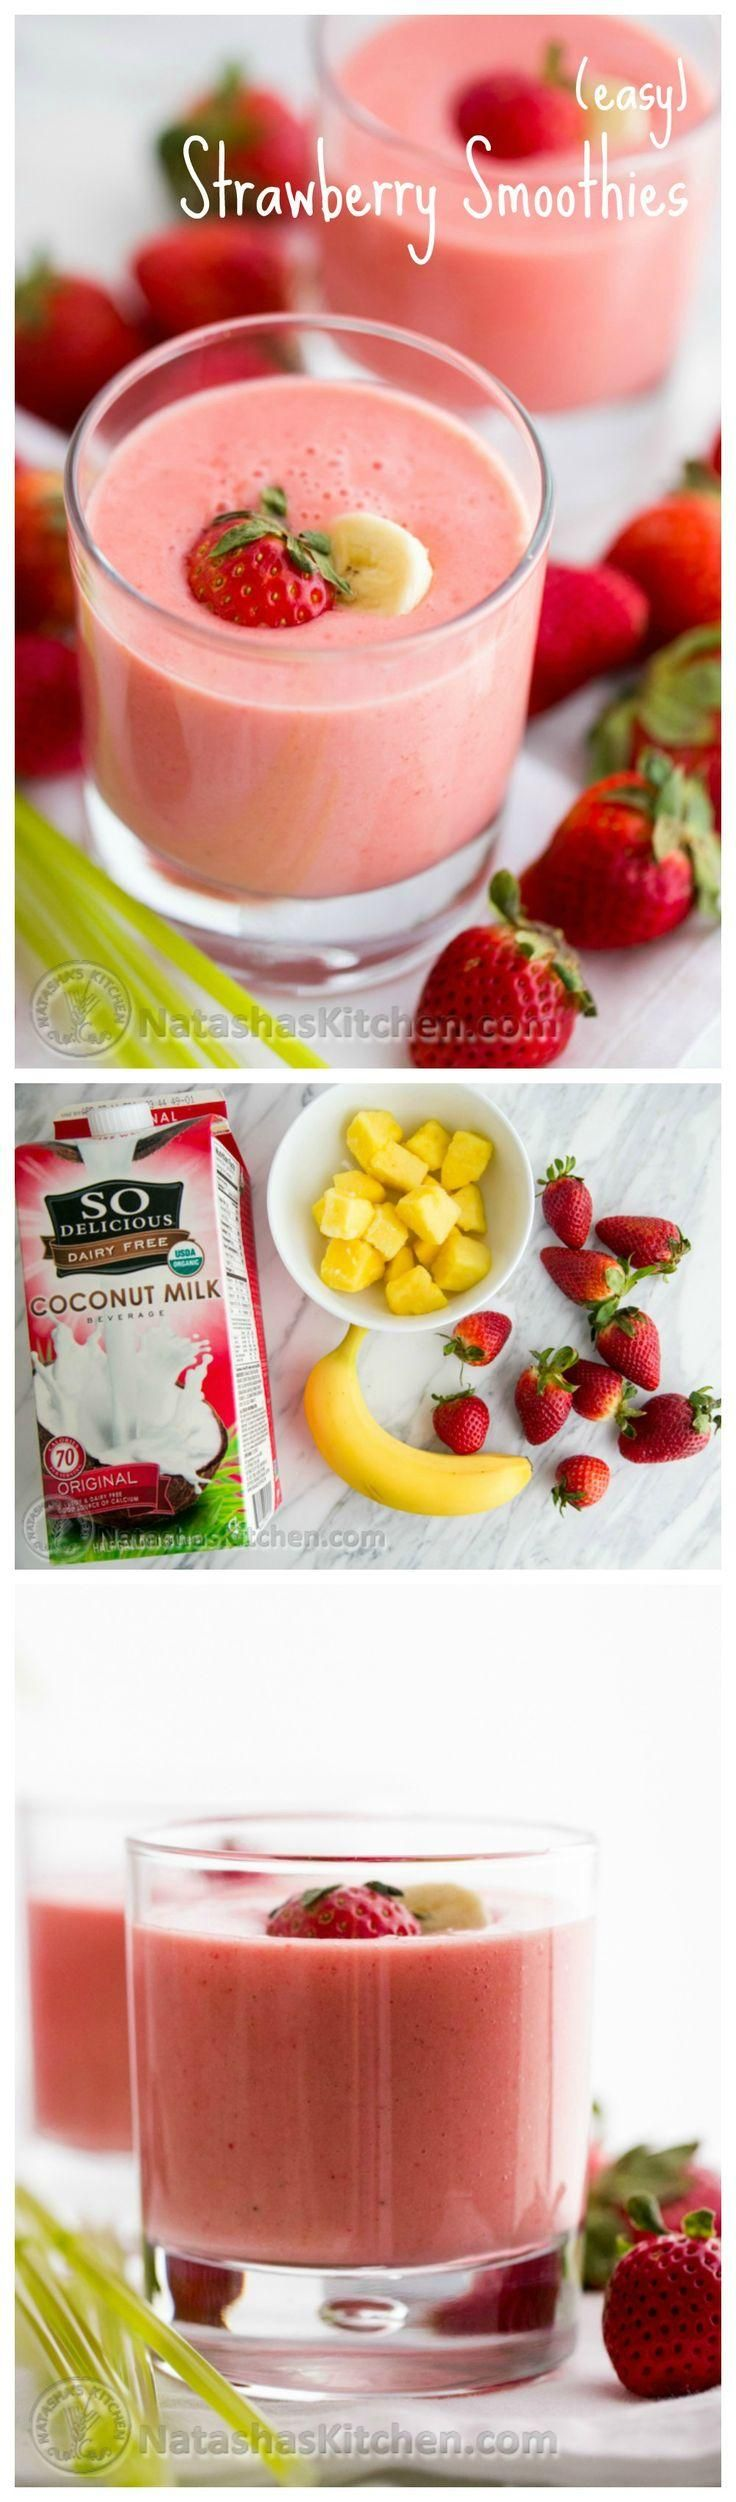 Try this Strawberry Smoothie recipe for some serious feel good energy in the morning!